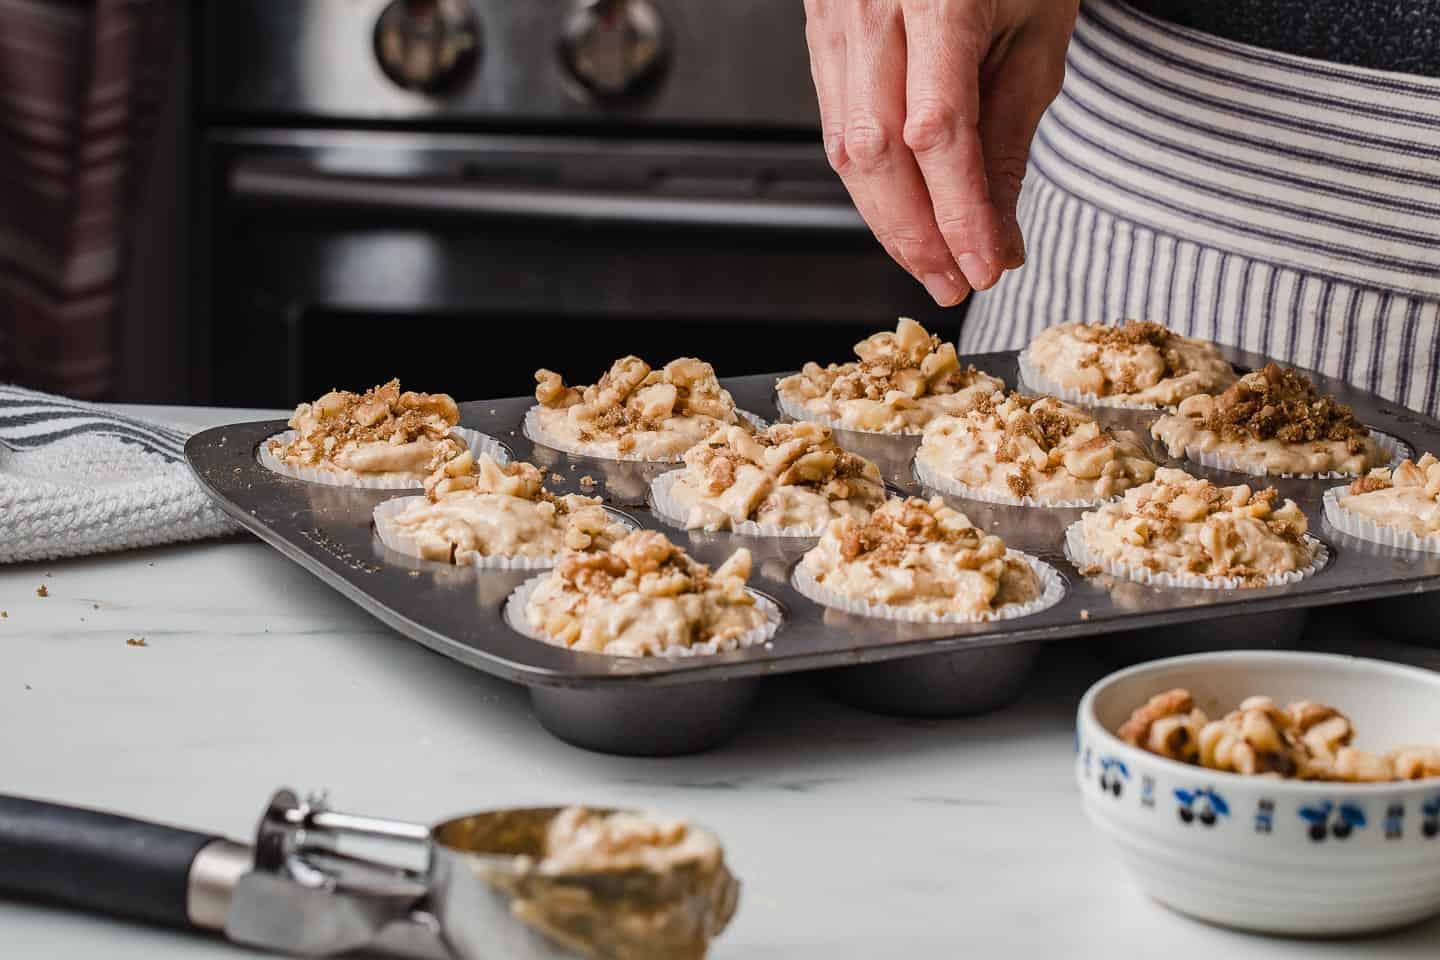 A woman sprinkling walnuts on top of sourdough banana nut muffins.